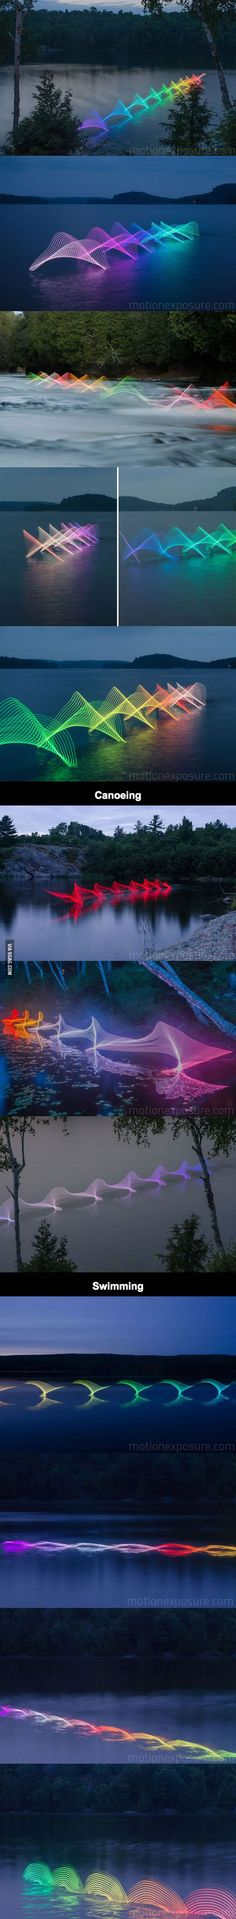 The Motions Of Canoers And Kayakers Revealed With LEDs In Long Exposure Photography.